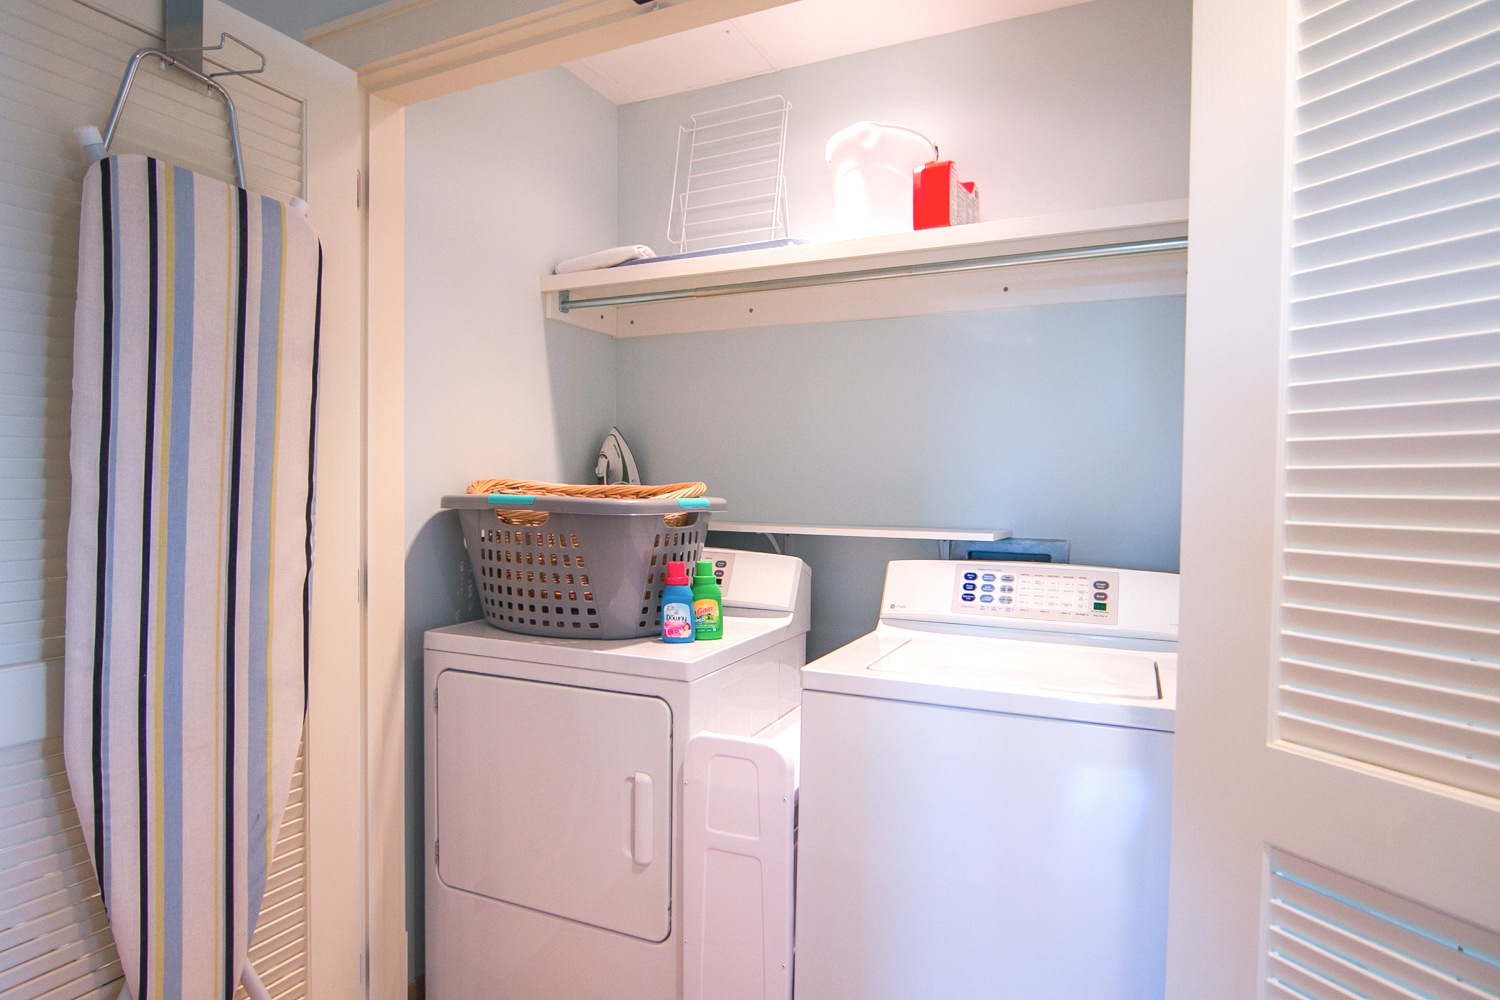 Laundry area is located in the hallway leading to the guest bedrooms